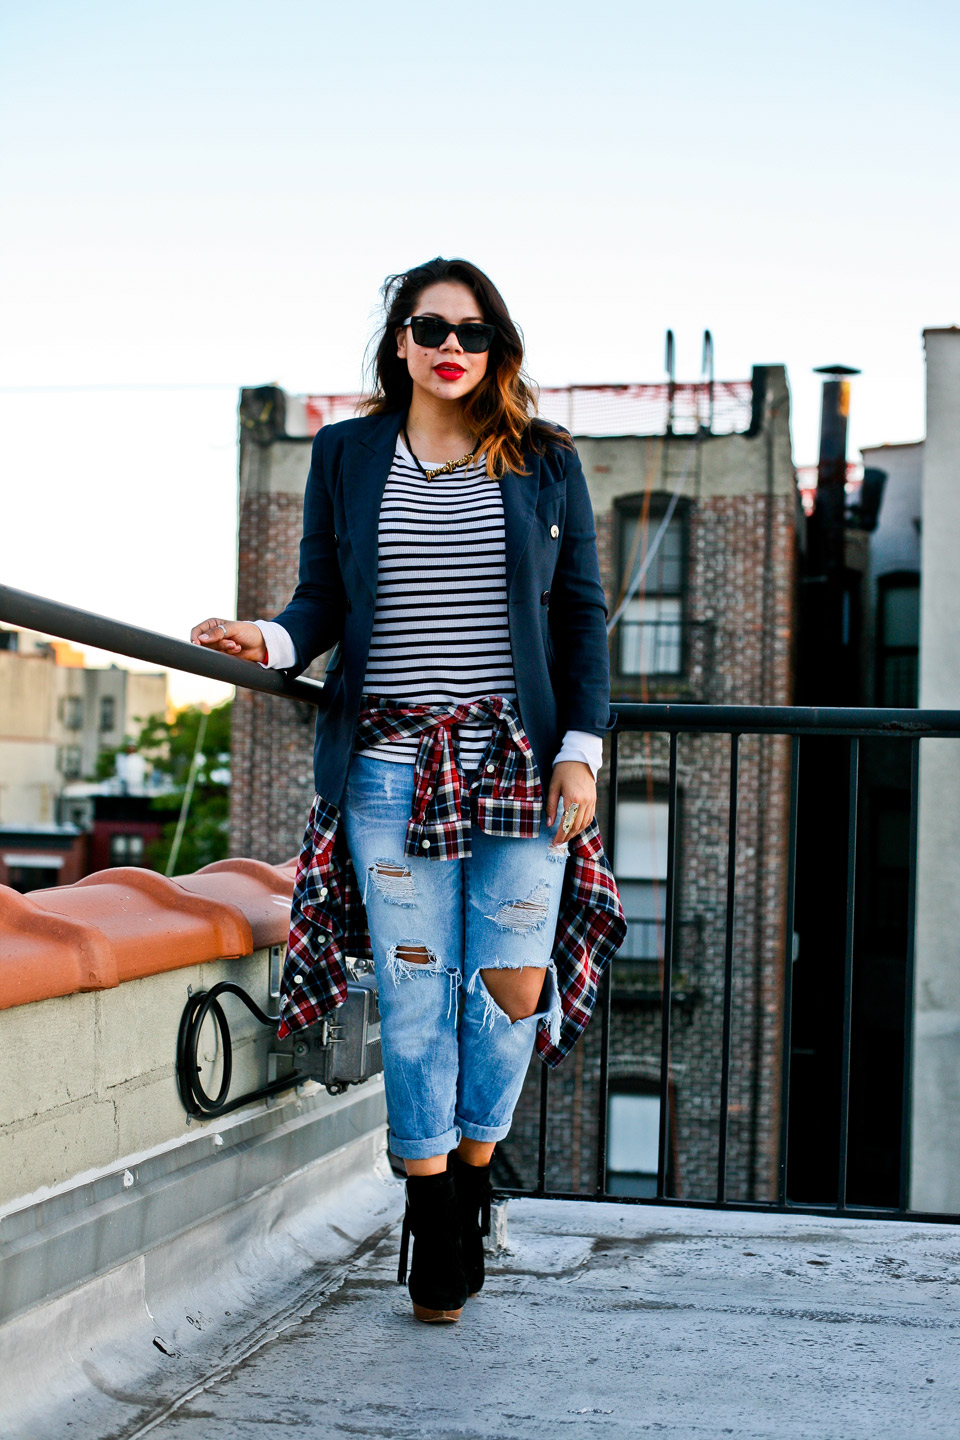 christina-topacio-profresh-style-stripes-plaid-boyfriends-jeans-zara-nyc-blogger-rooftop-photo